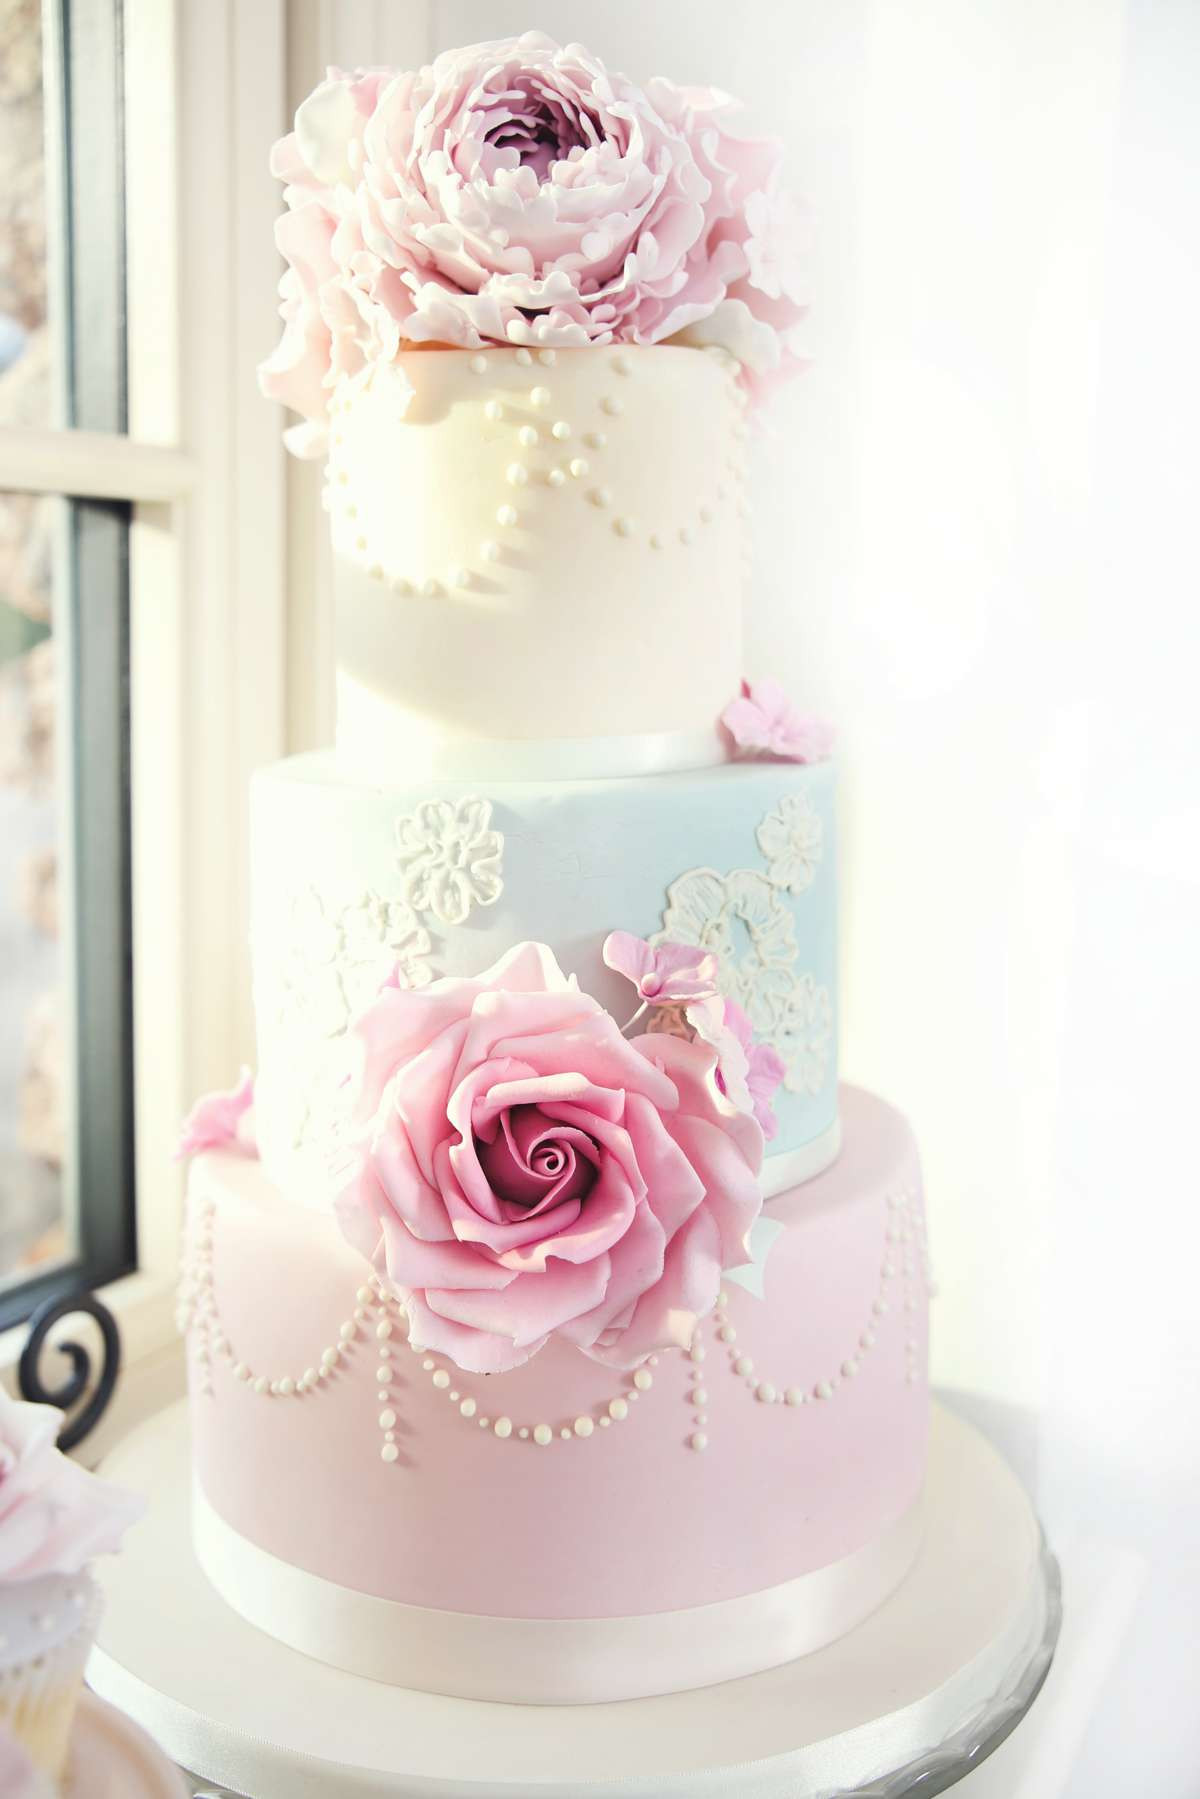 Wedding Cakes 2017  Wedding cake trends for 2017 Love Our Wedding